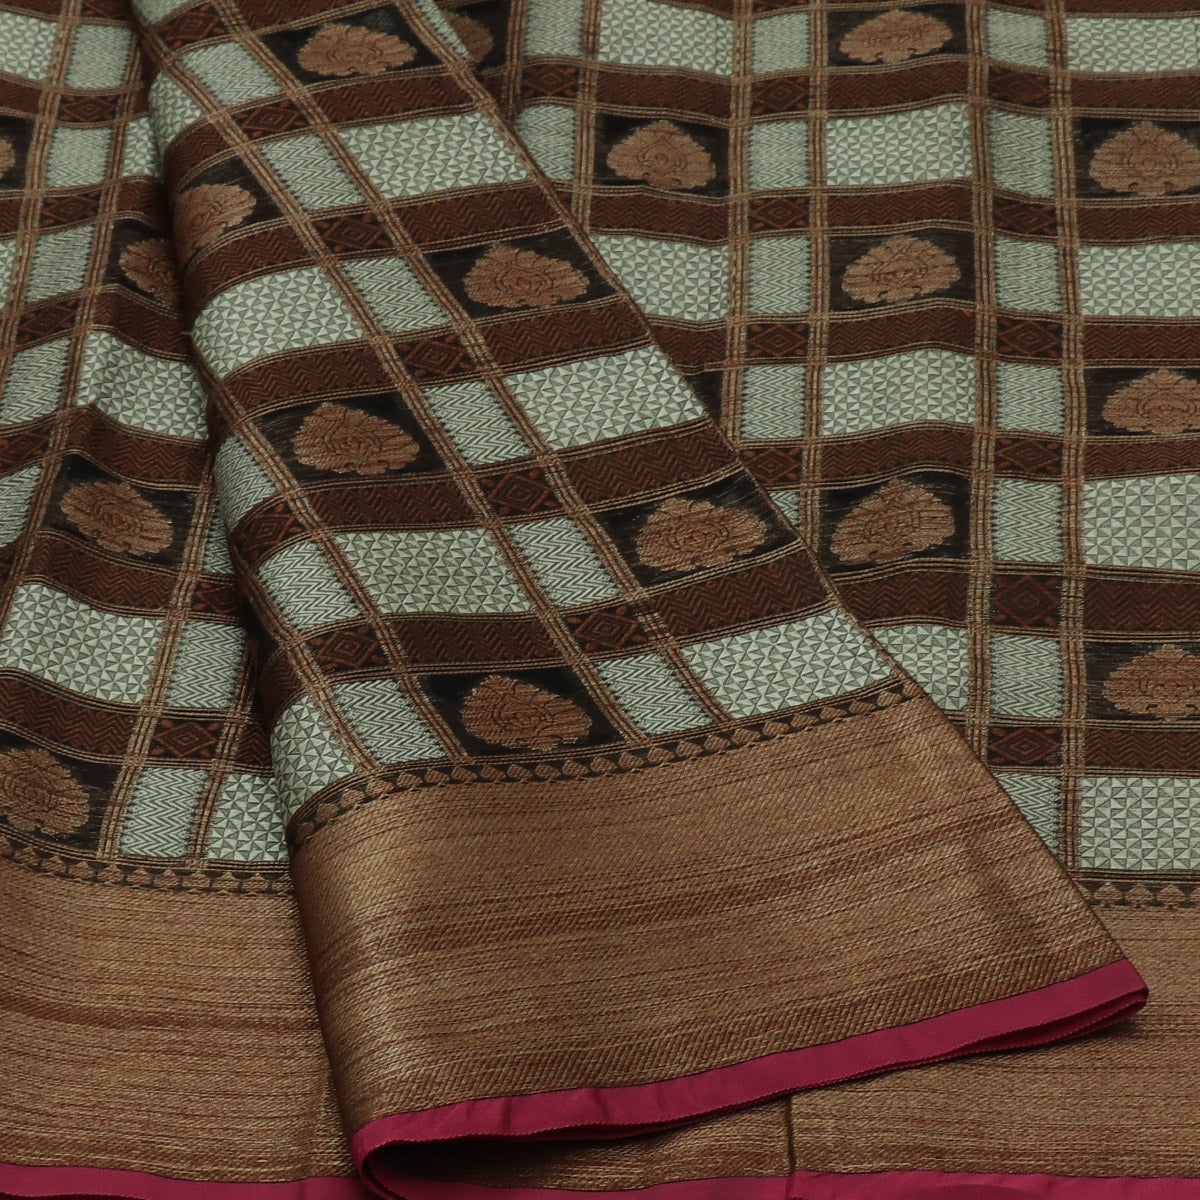 Banarasi Kora Muslin Saree Half White Brown with Zari Border